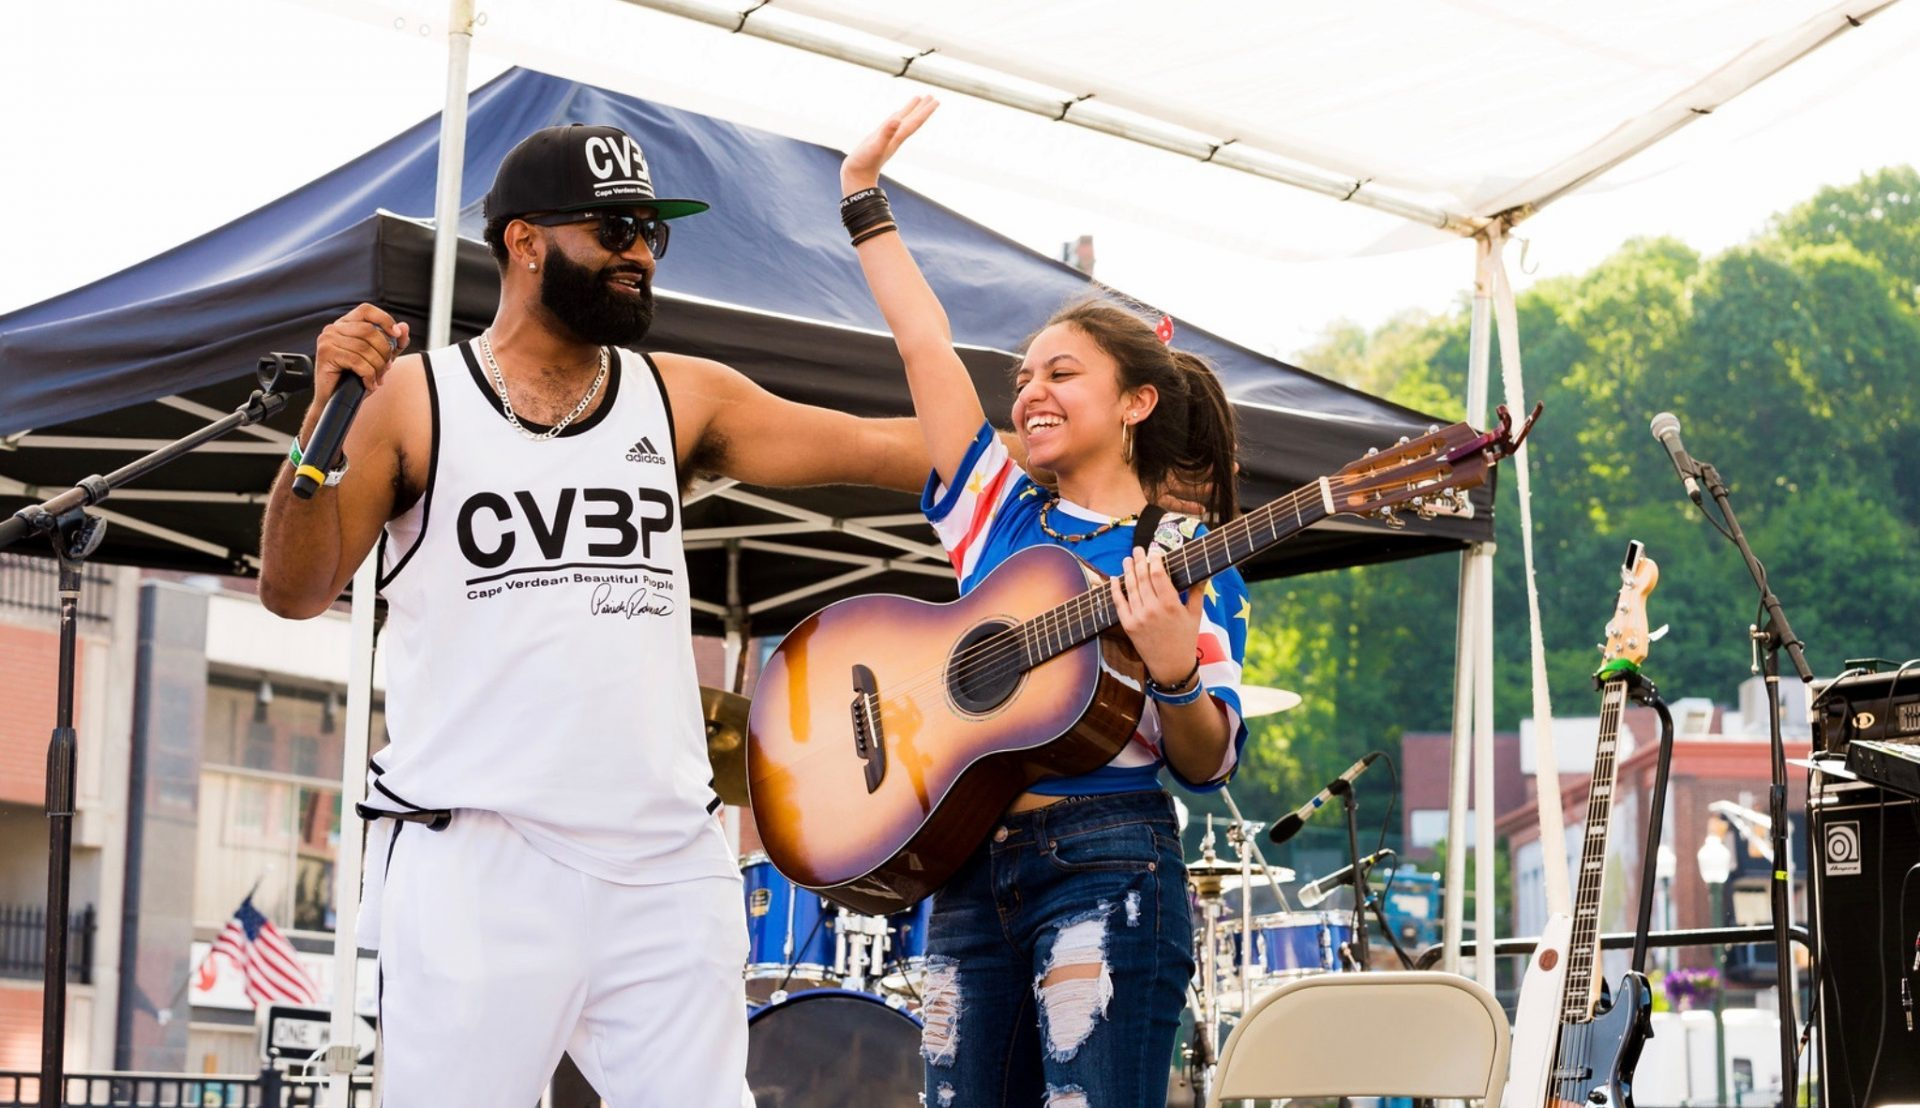 Global City Norwich Cape Verdean Festival 2019